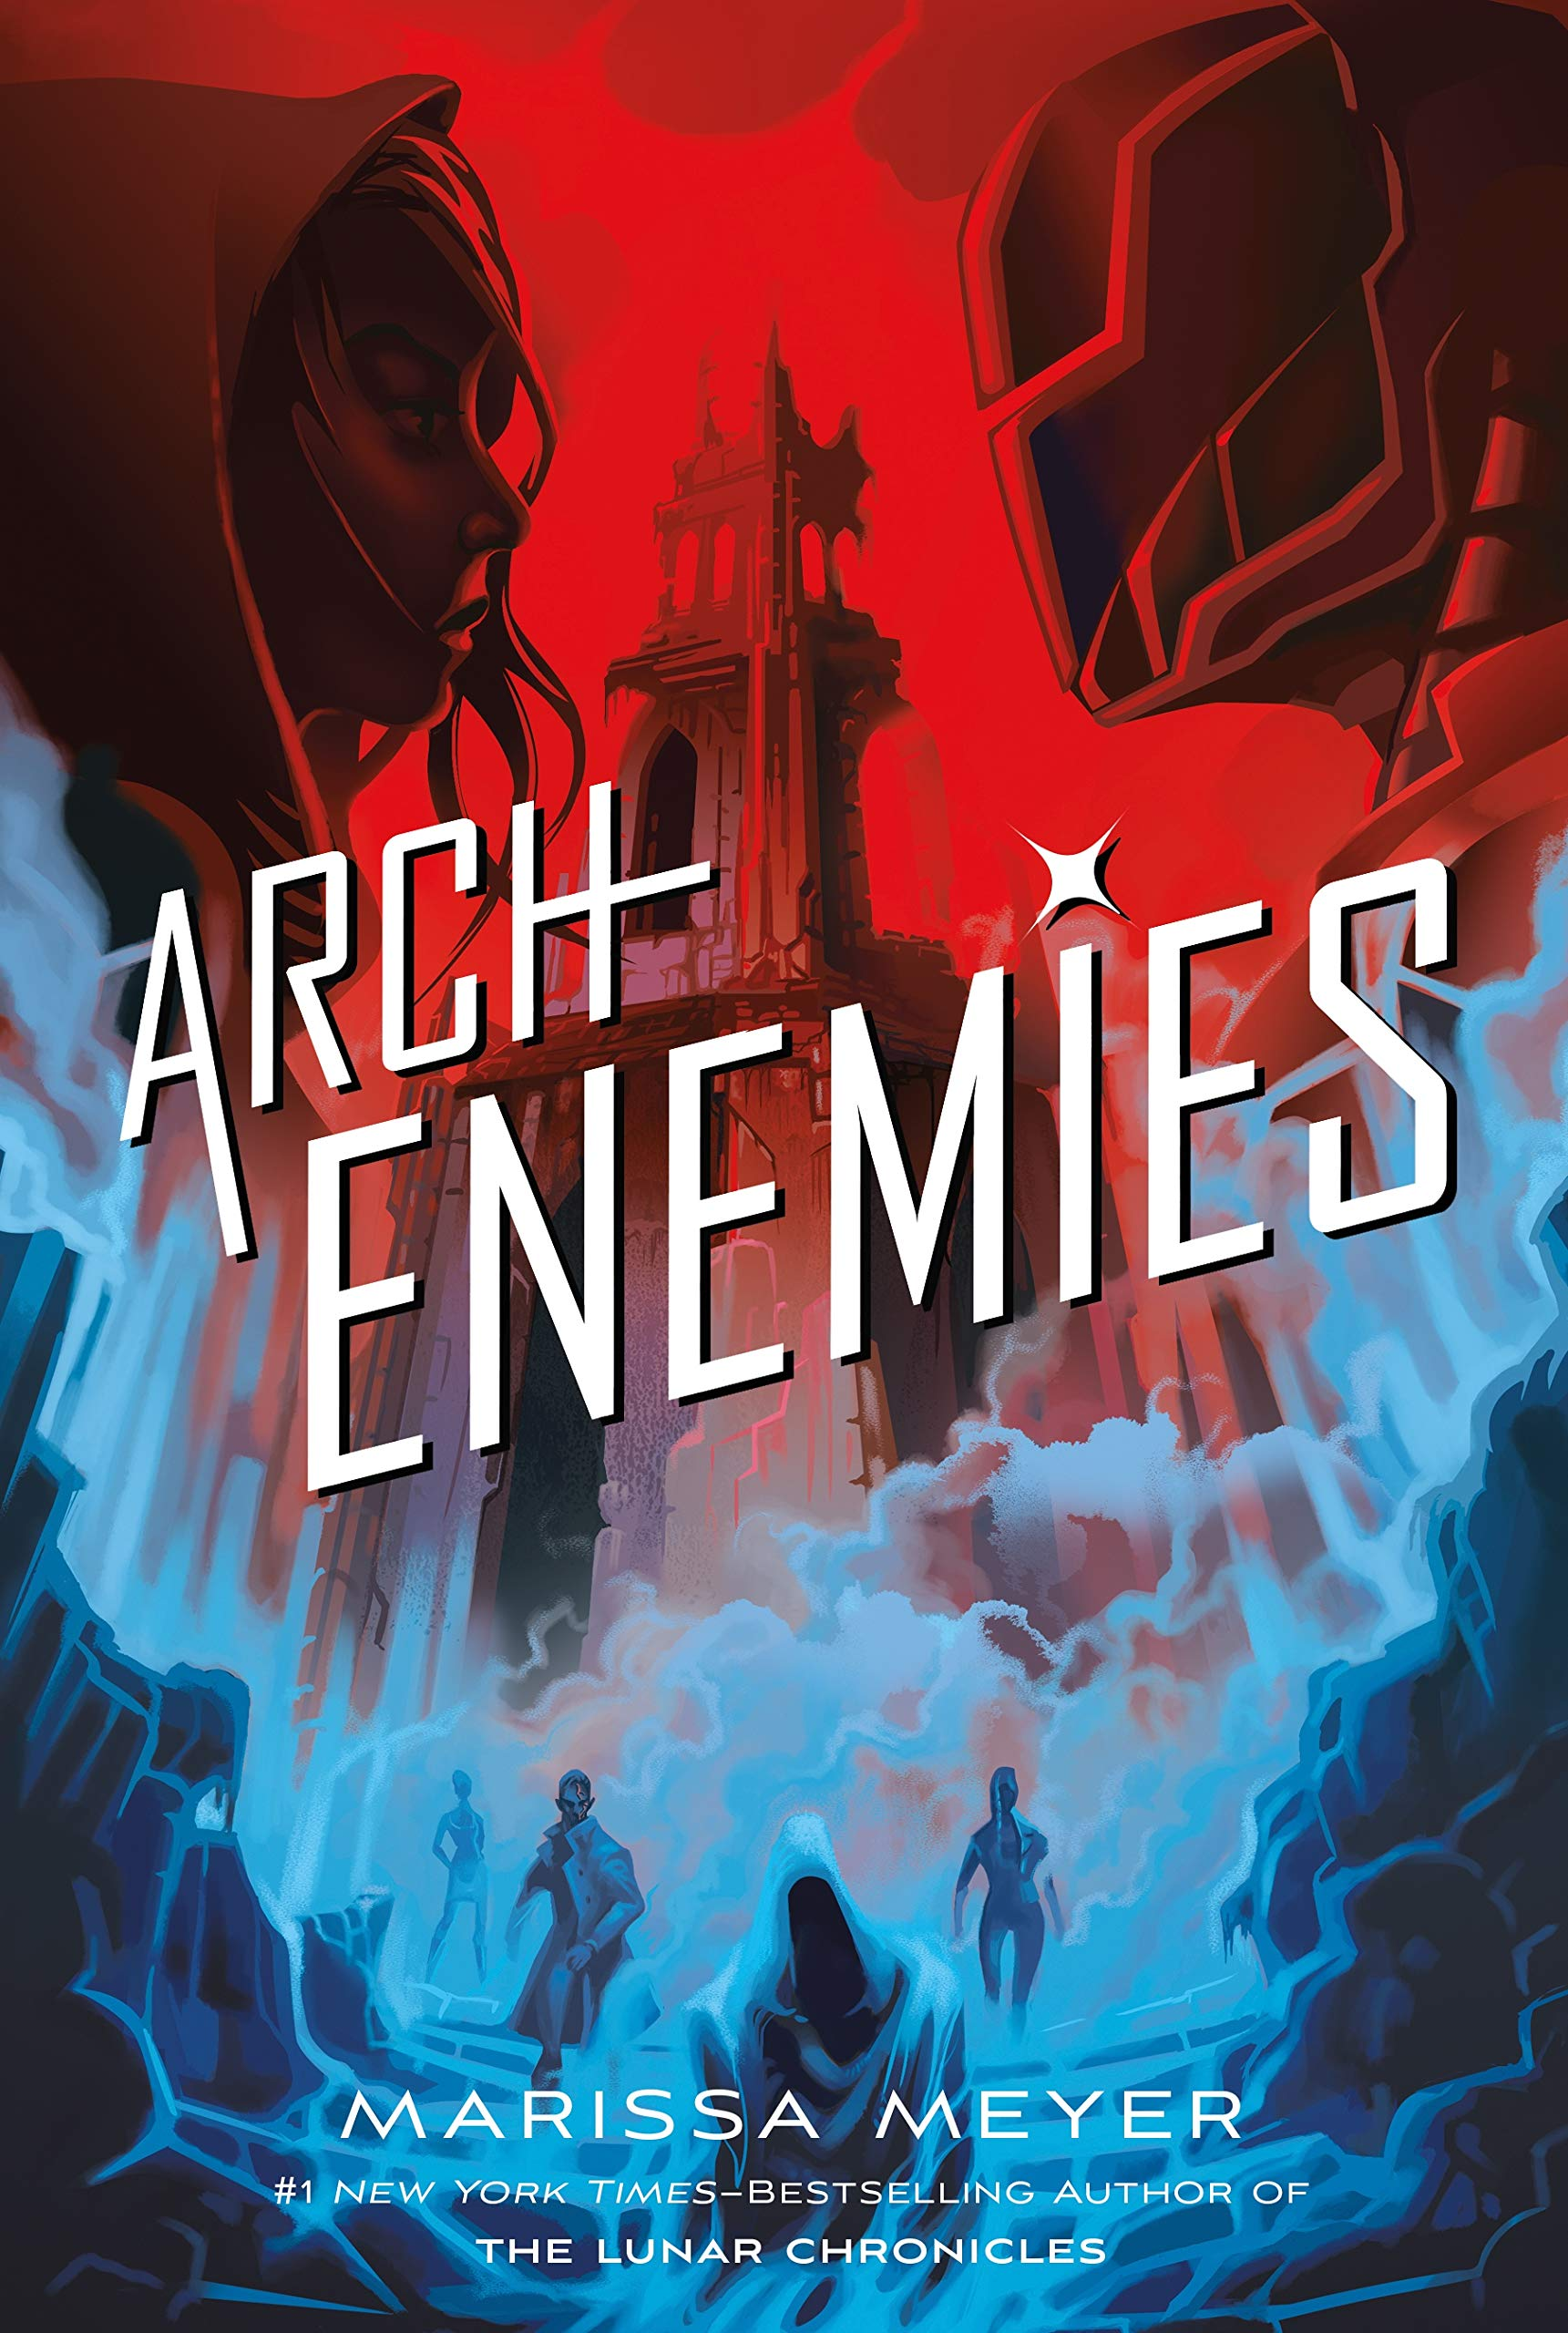 Amazon.com: Archenemies (Renegades (2)) (9781250078308): Meyer ...